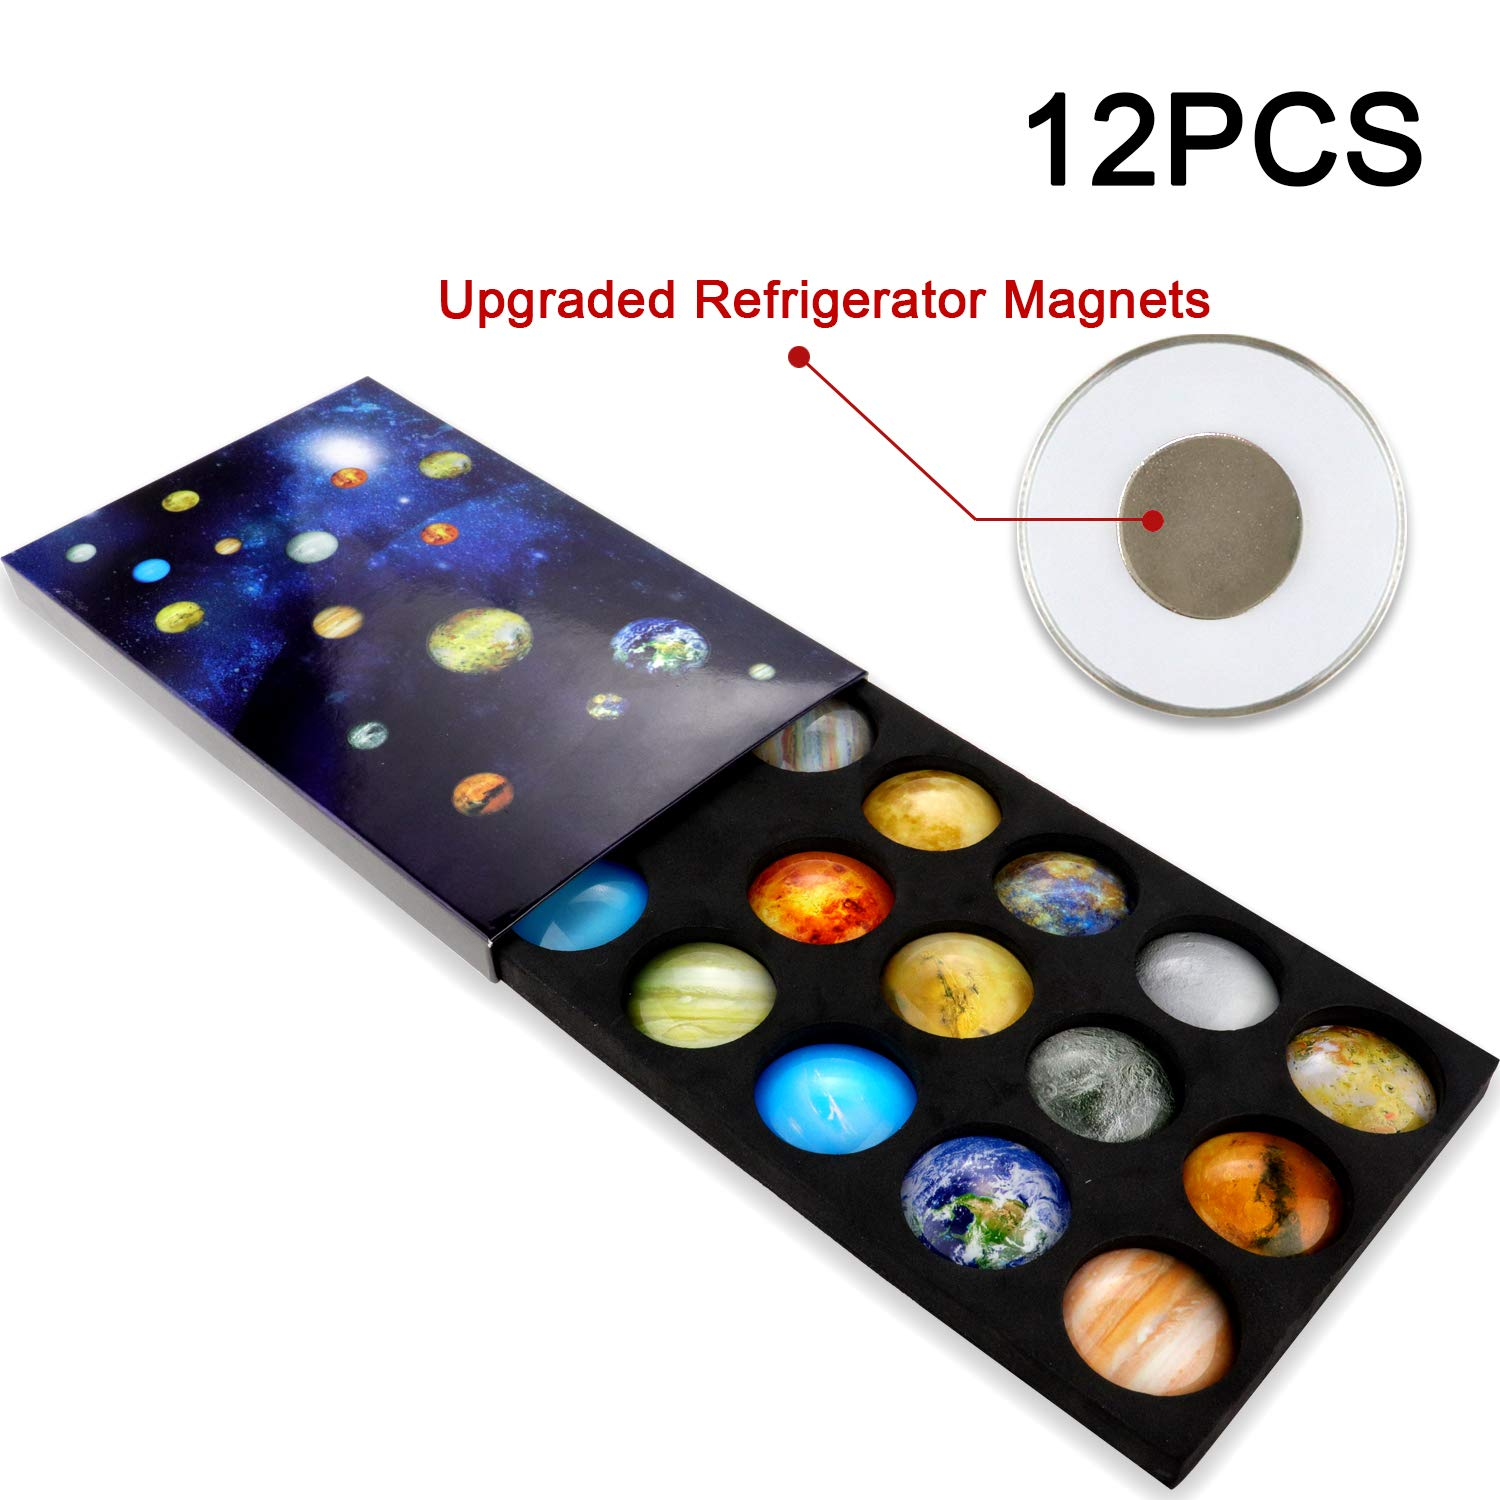 Ktdorns Planetary Fridge Magnets -12 Pack Refrigerator Magnets, Office Magnets, Calendar Magnet, Whiteboard Magnets,Perfect Decorative Magnet Set with Storage Box (Upgraded Refrigerator Magnets)